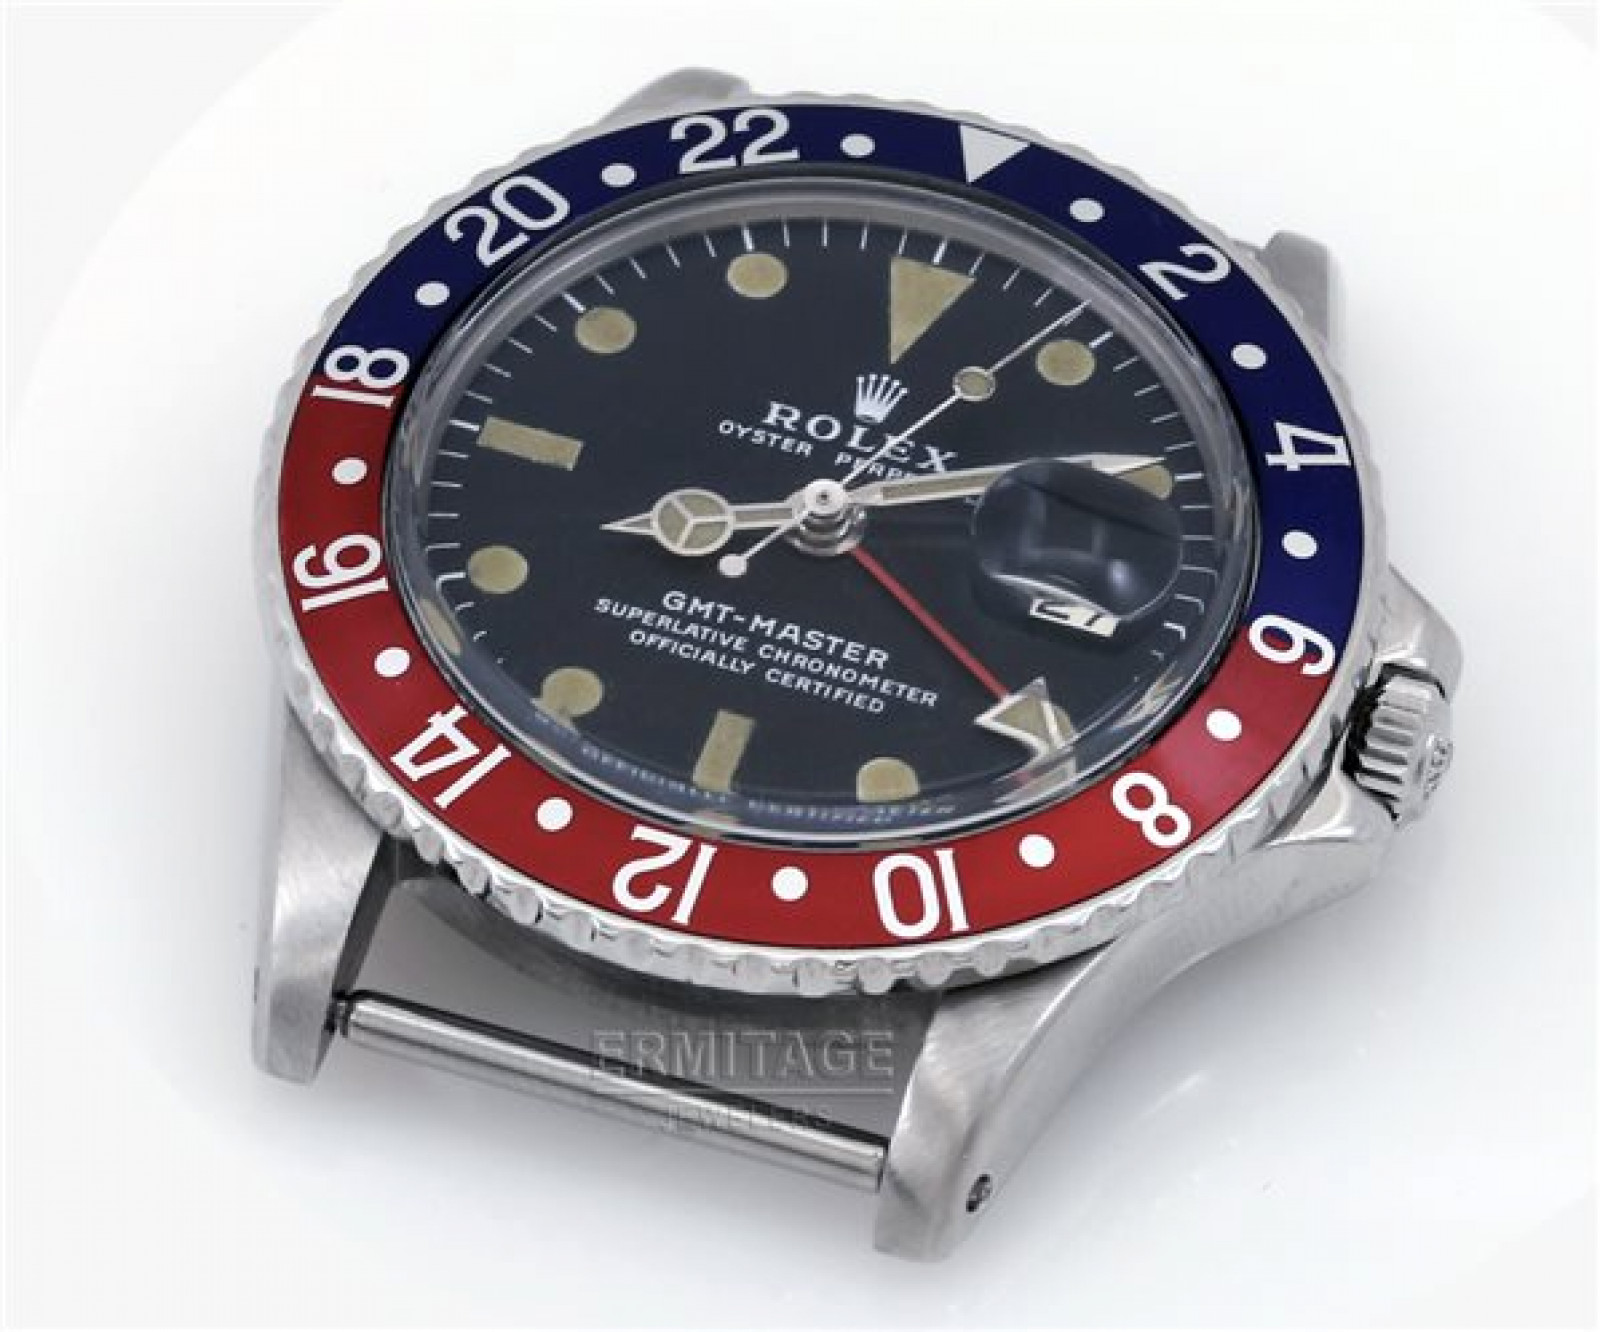 Vintage Rolex GMT-Master 1675 Steel Year 1971 with Black Dial 1971